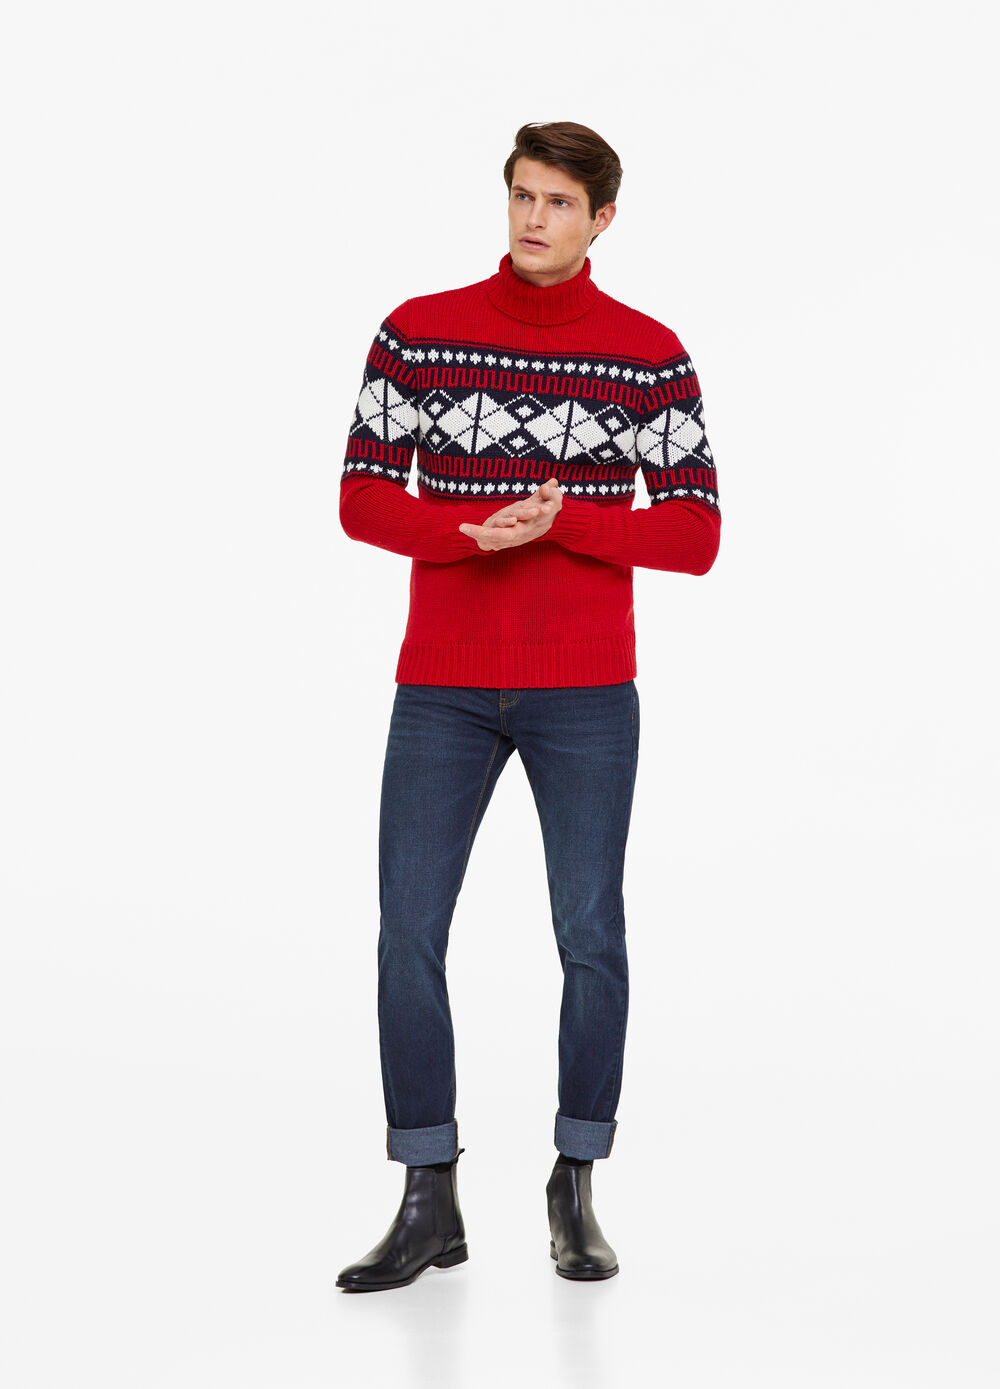 Christmas sweater with high neck